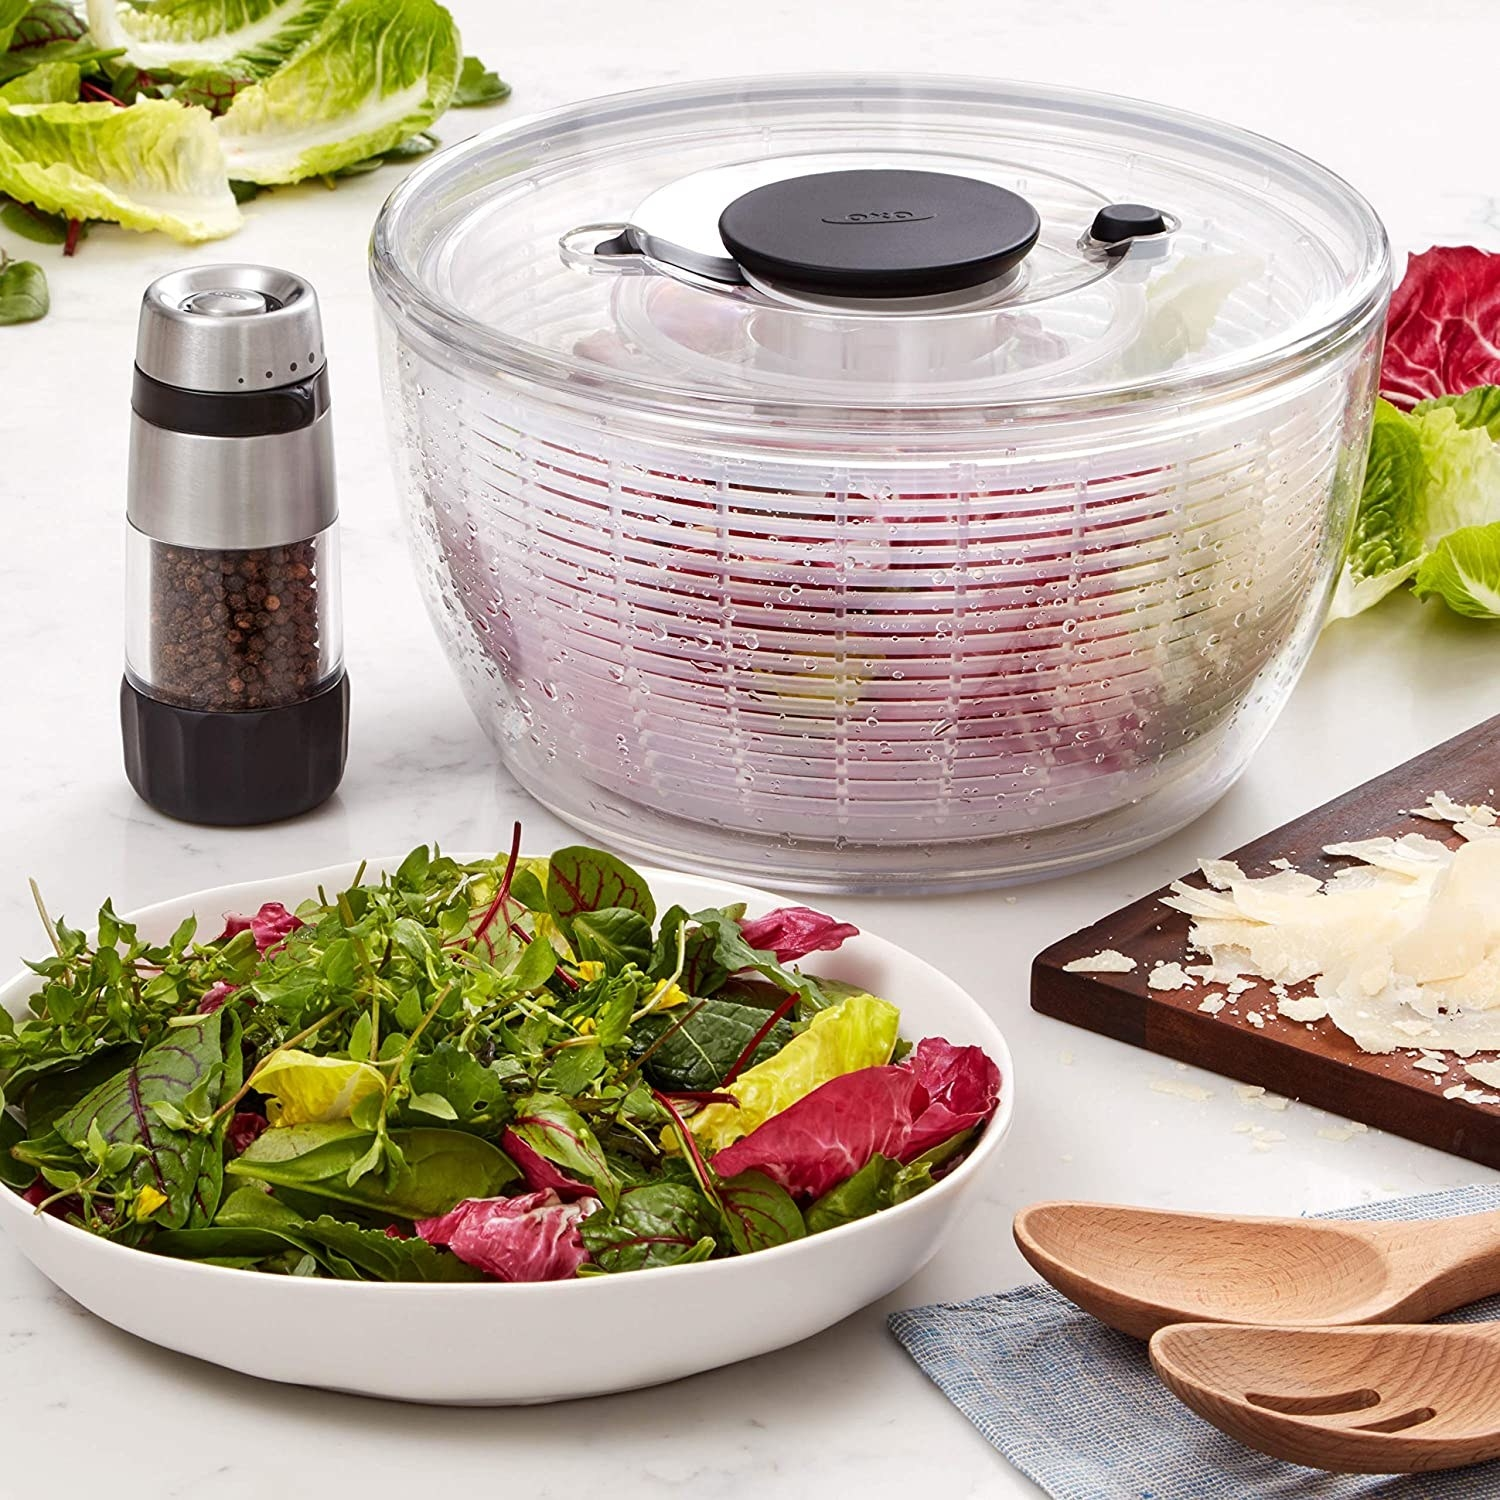 the clear salad spinner next to a bowl of fresh salad